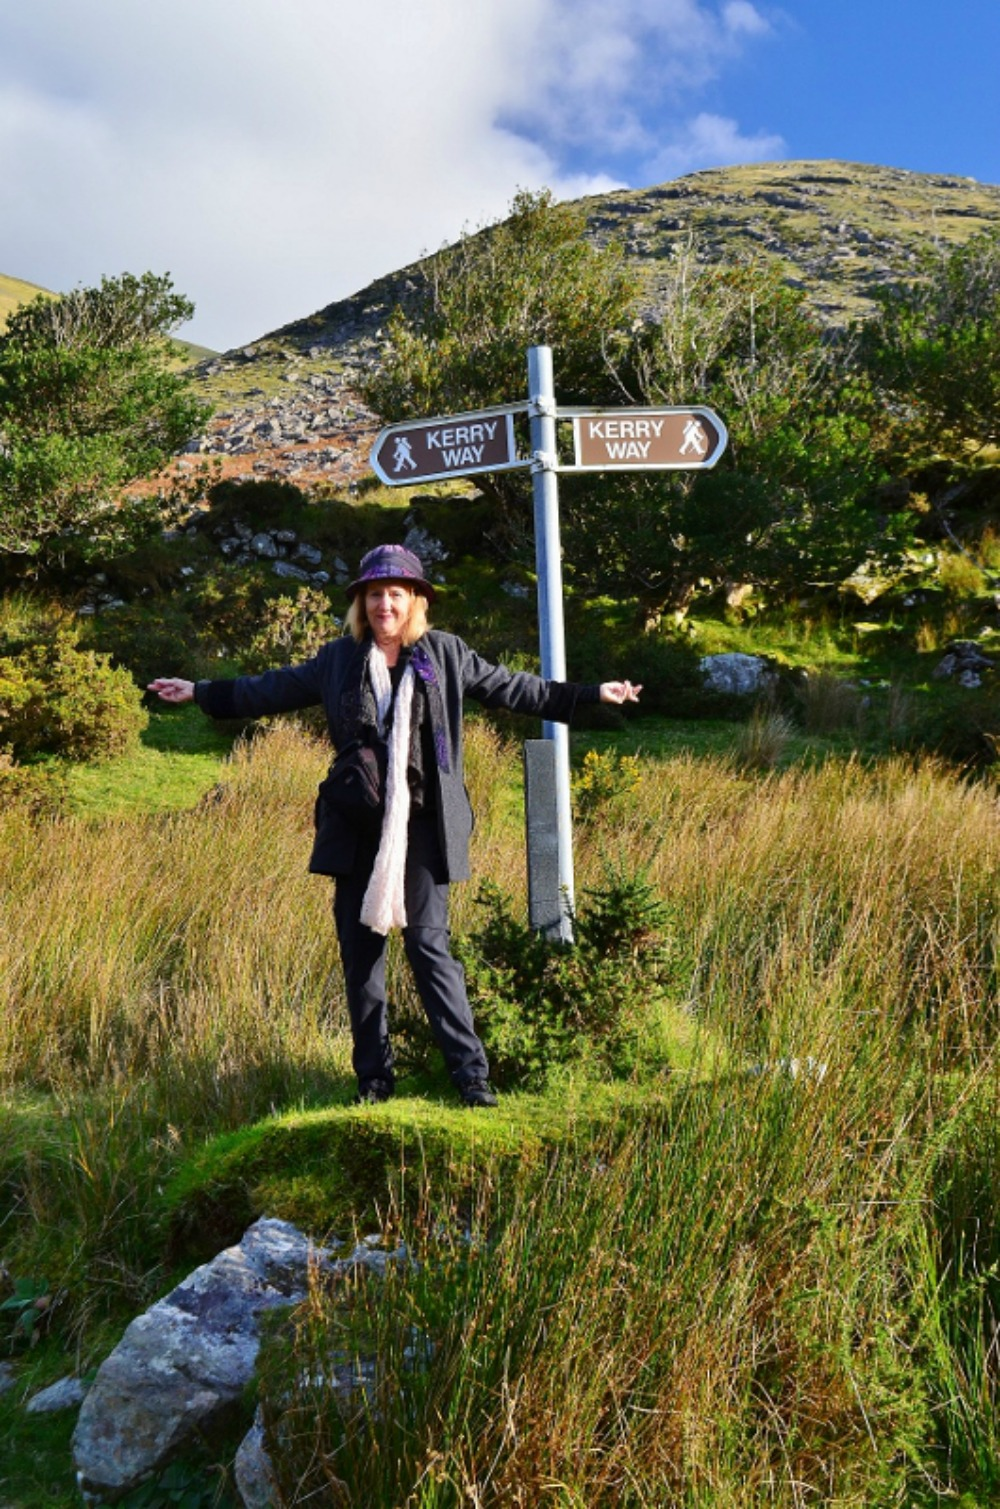 Taking a walk along the Kerry Way. Photo courtesy Lorraine Parker.